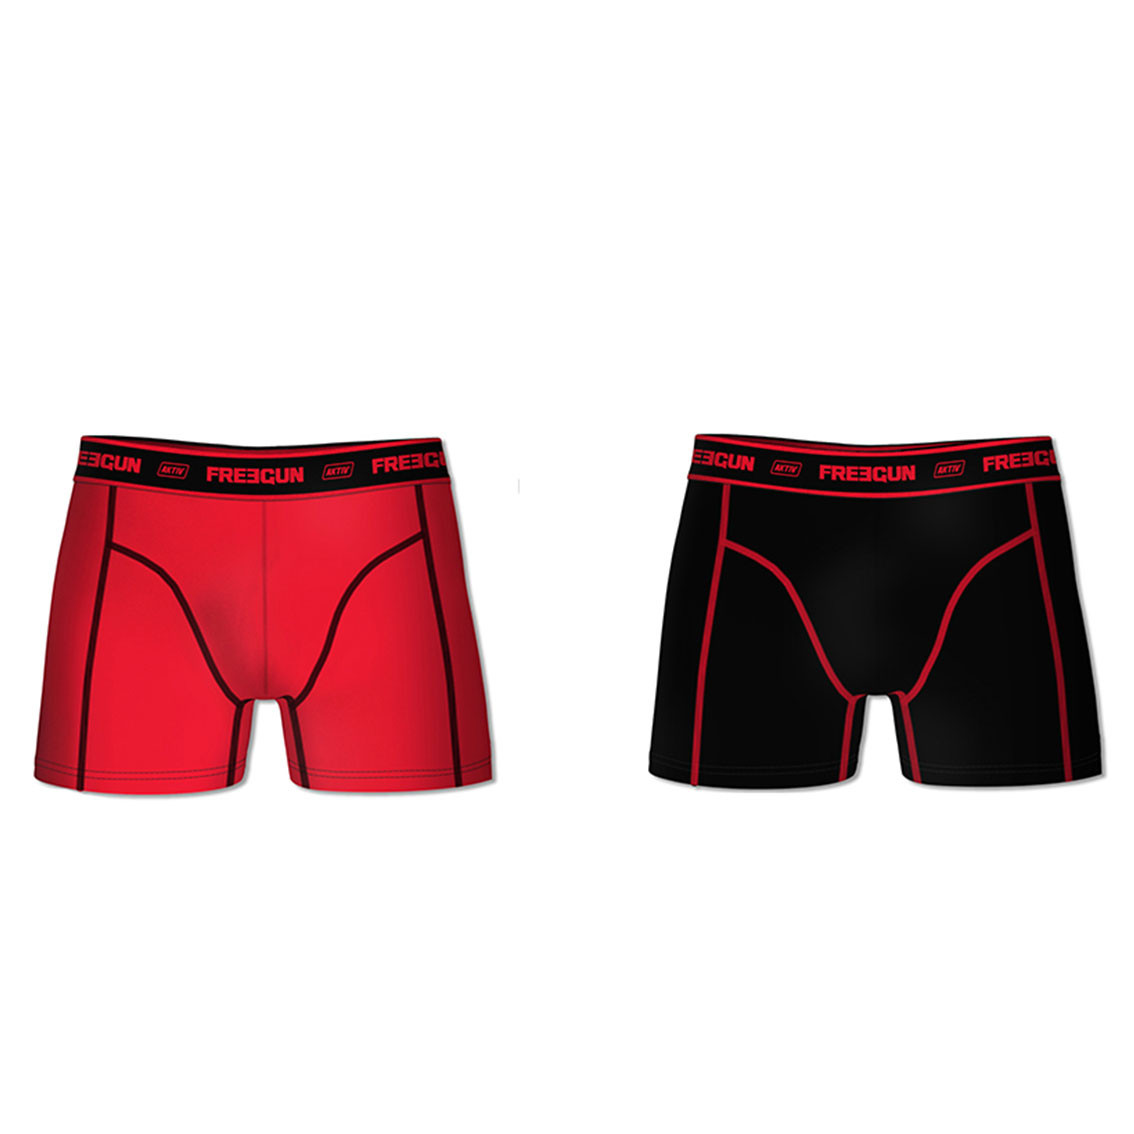 Lot de 2 boxers coton homme aktiv rouge et noir (photo)